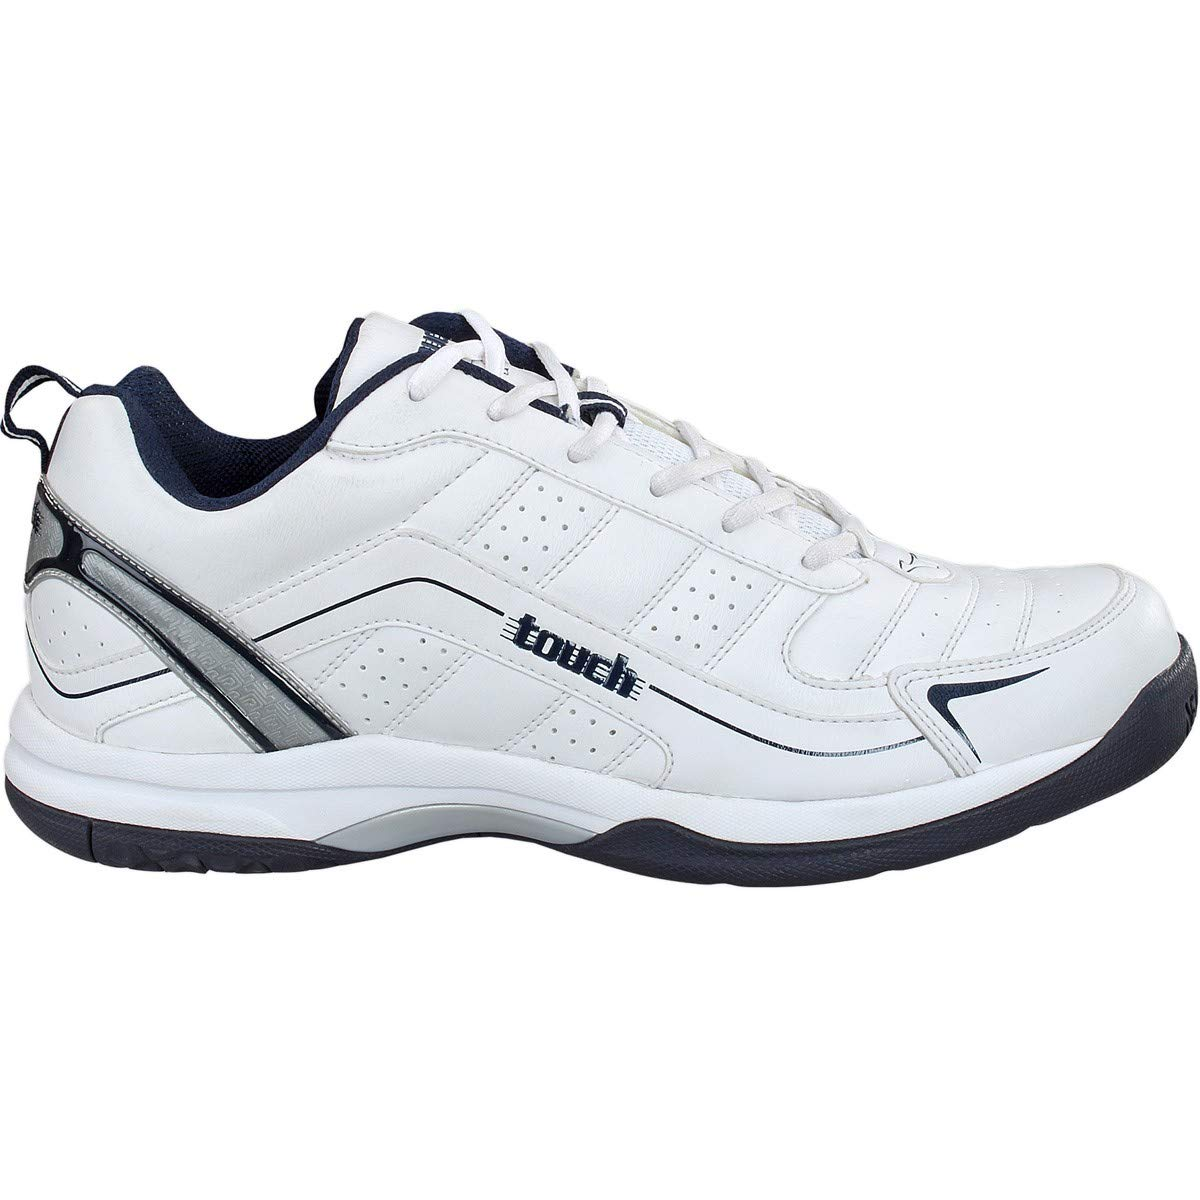 Buy Lakhani Men's Track Shoes at Amazon.in